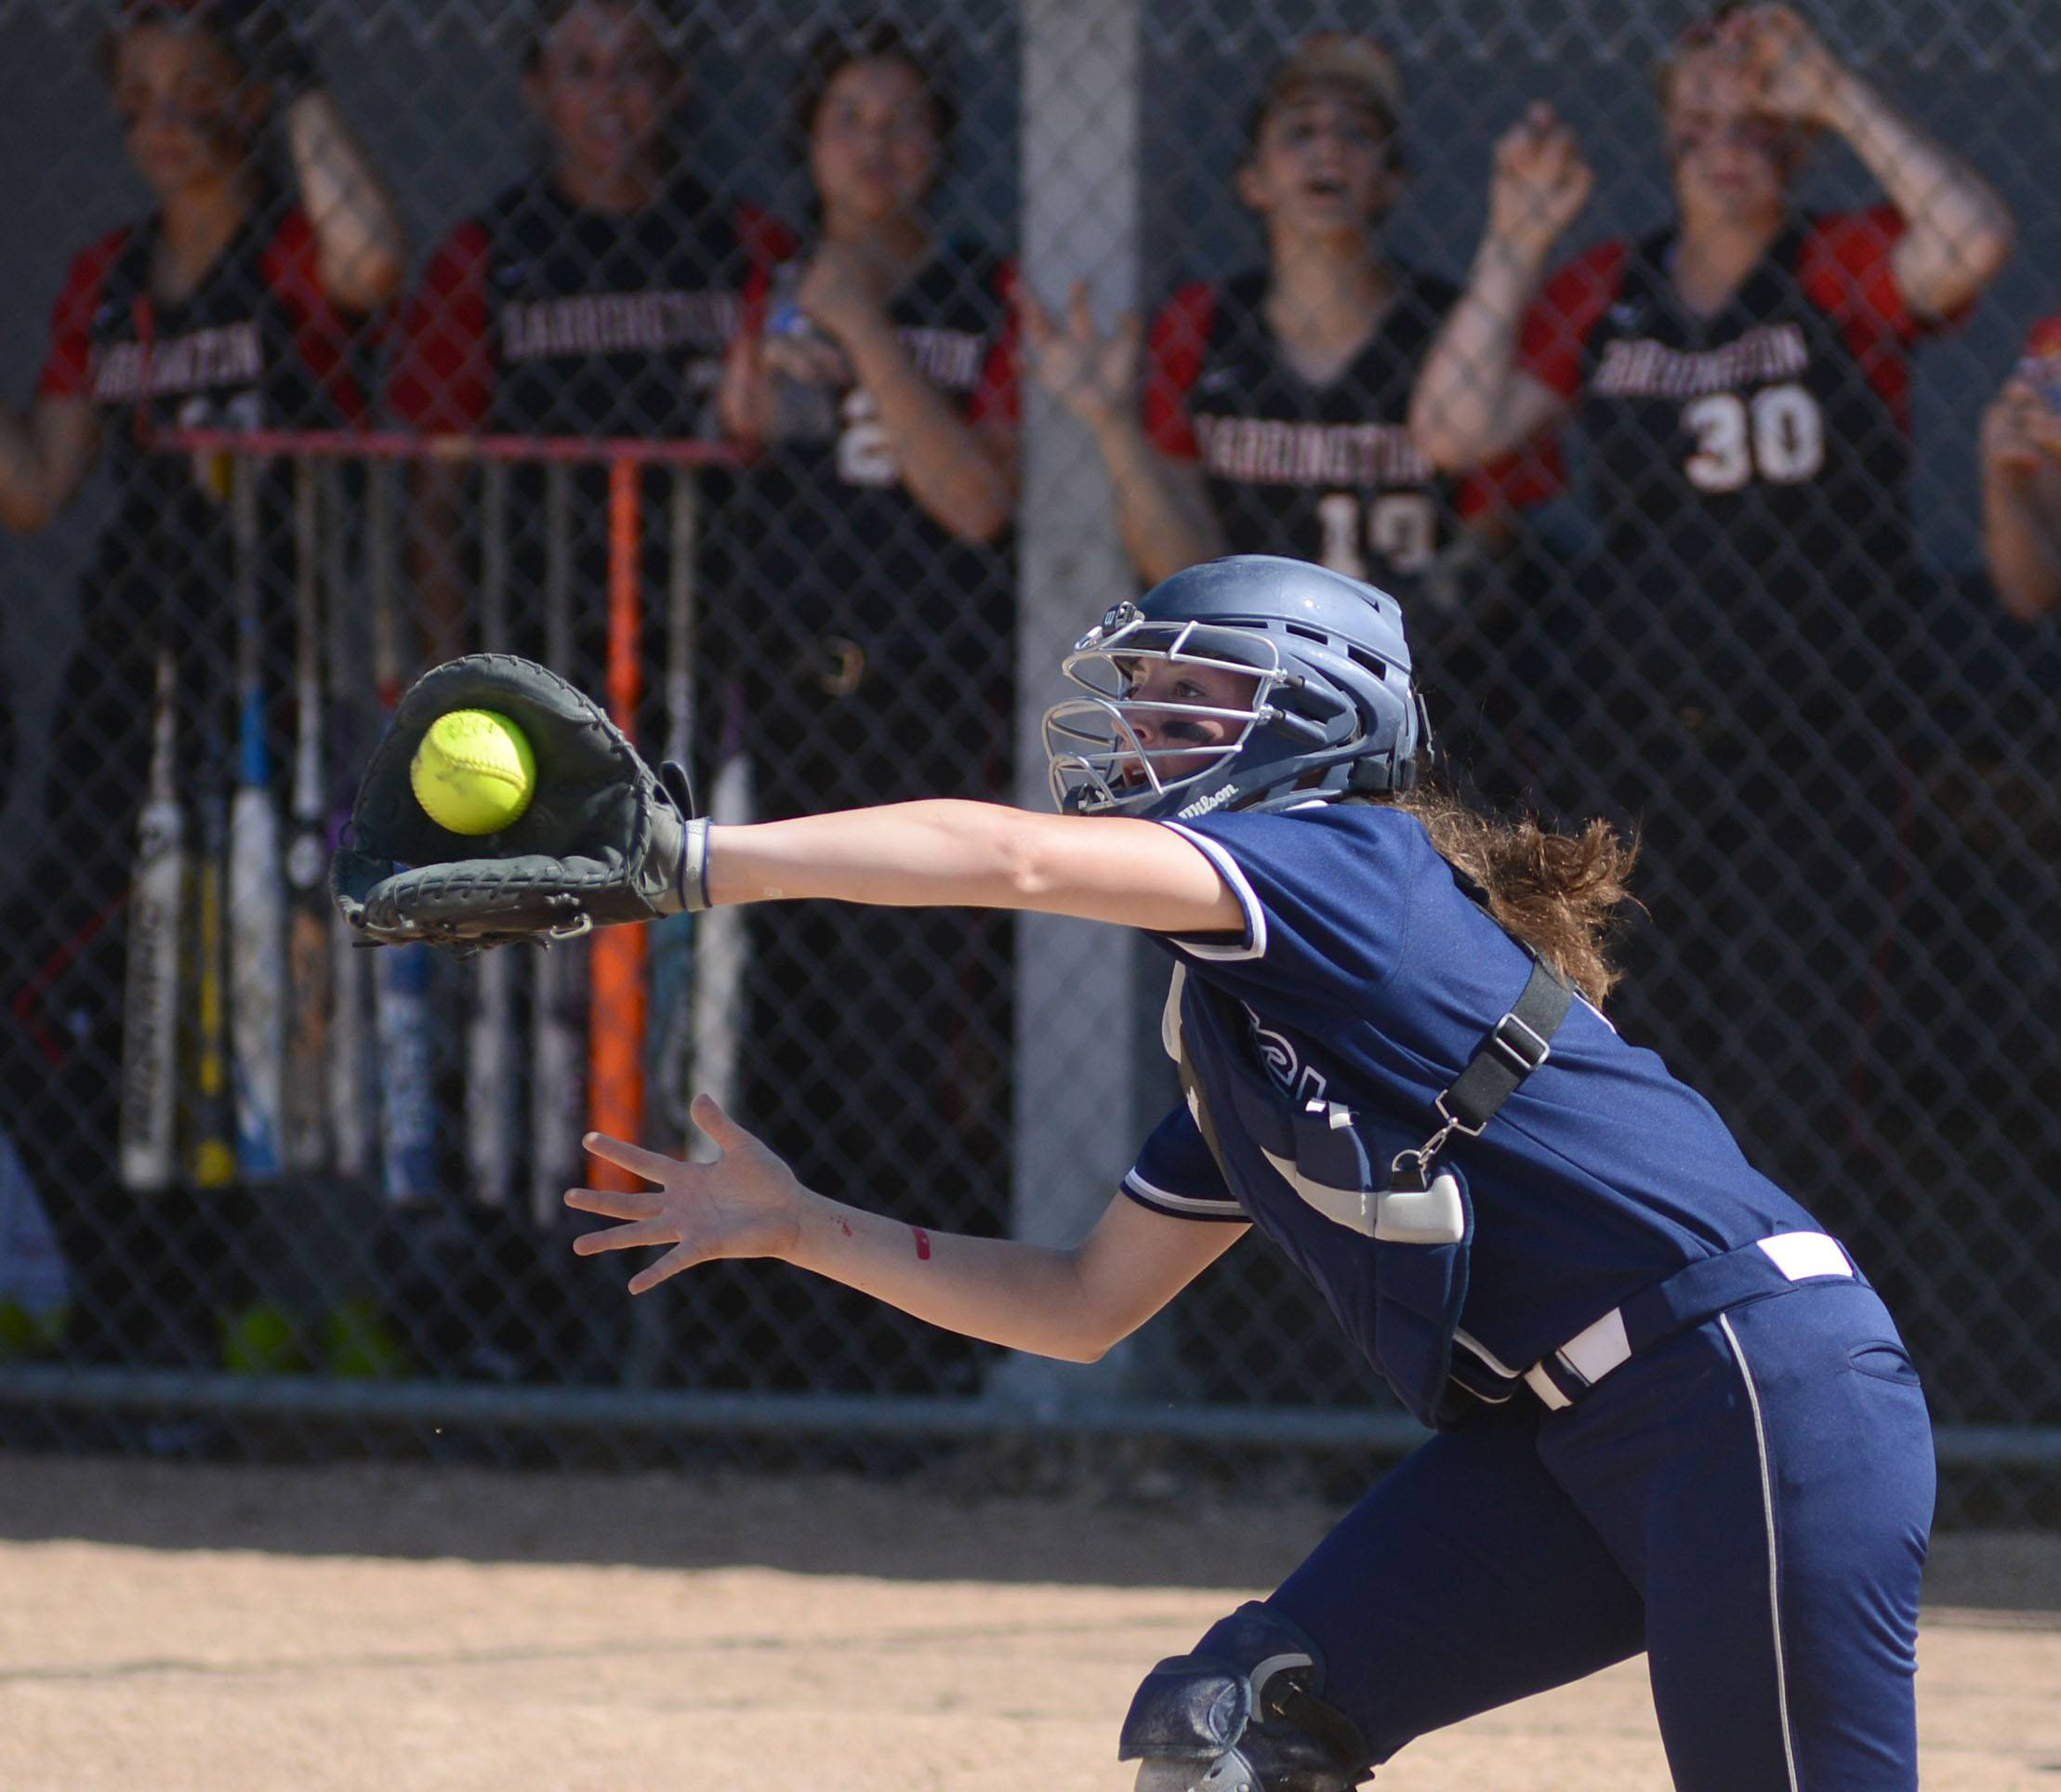 Cary-Grove's Grace Pilz catches an out for Barrington in the second inning of the Class 4A girls softball regional championship in Cary on Friday, May 30.